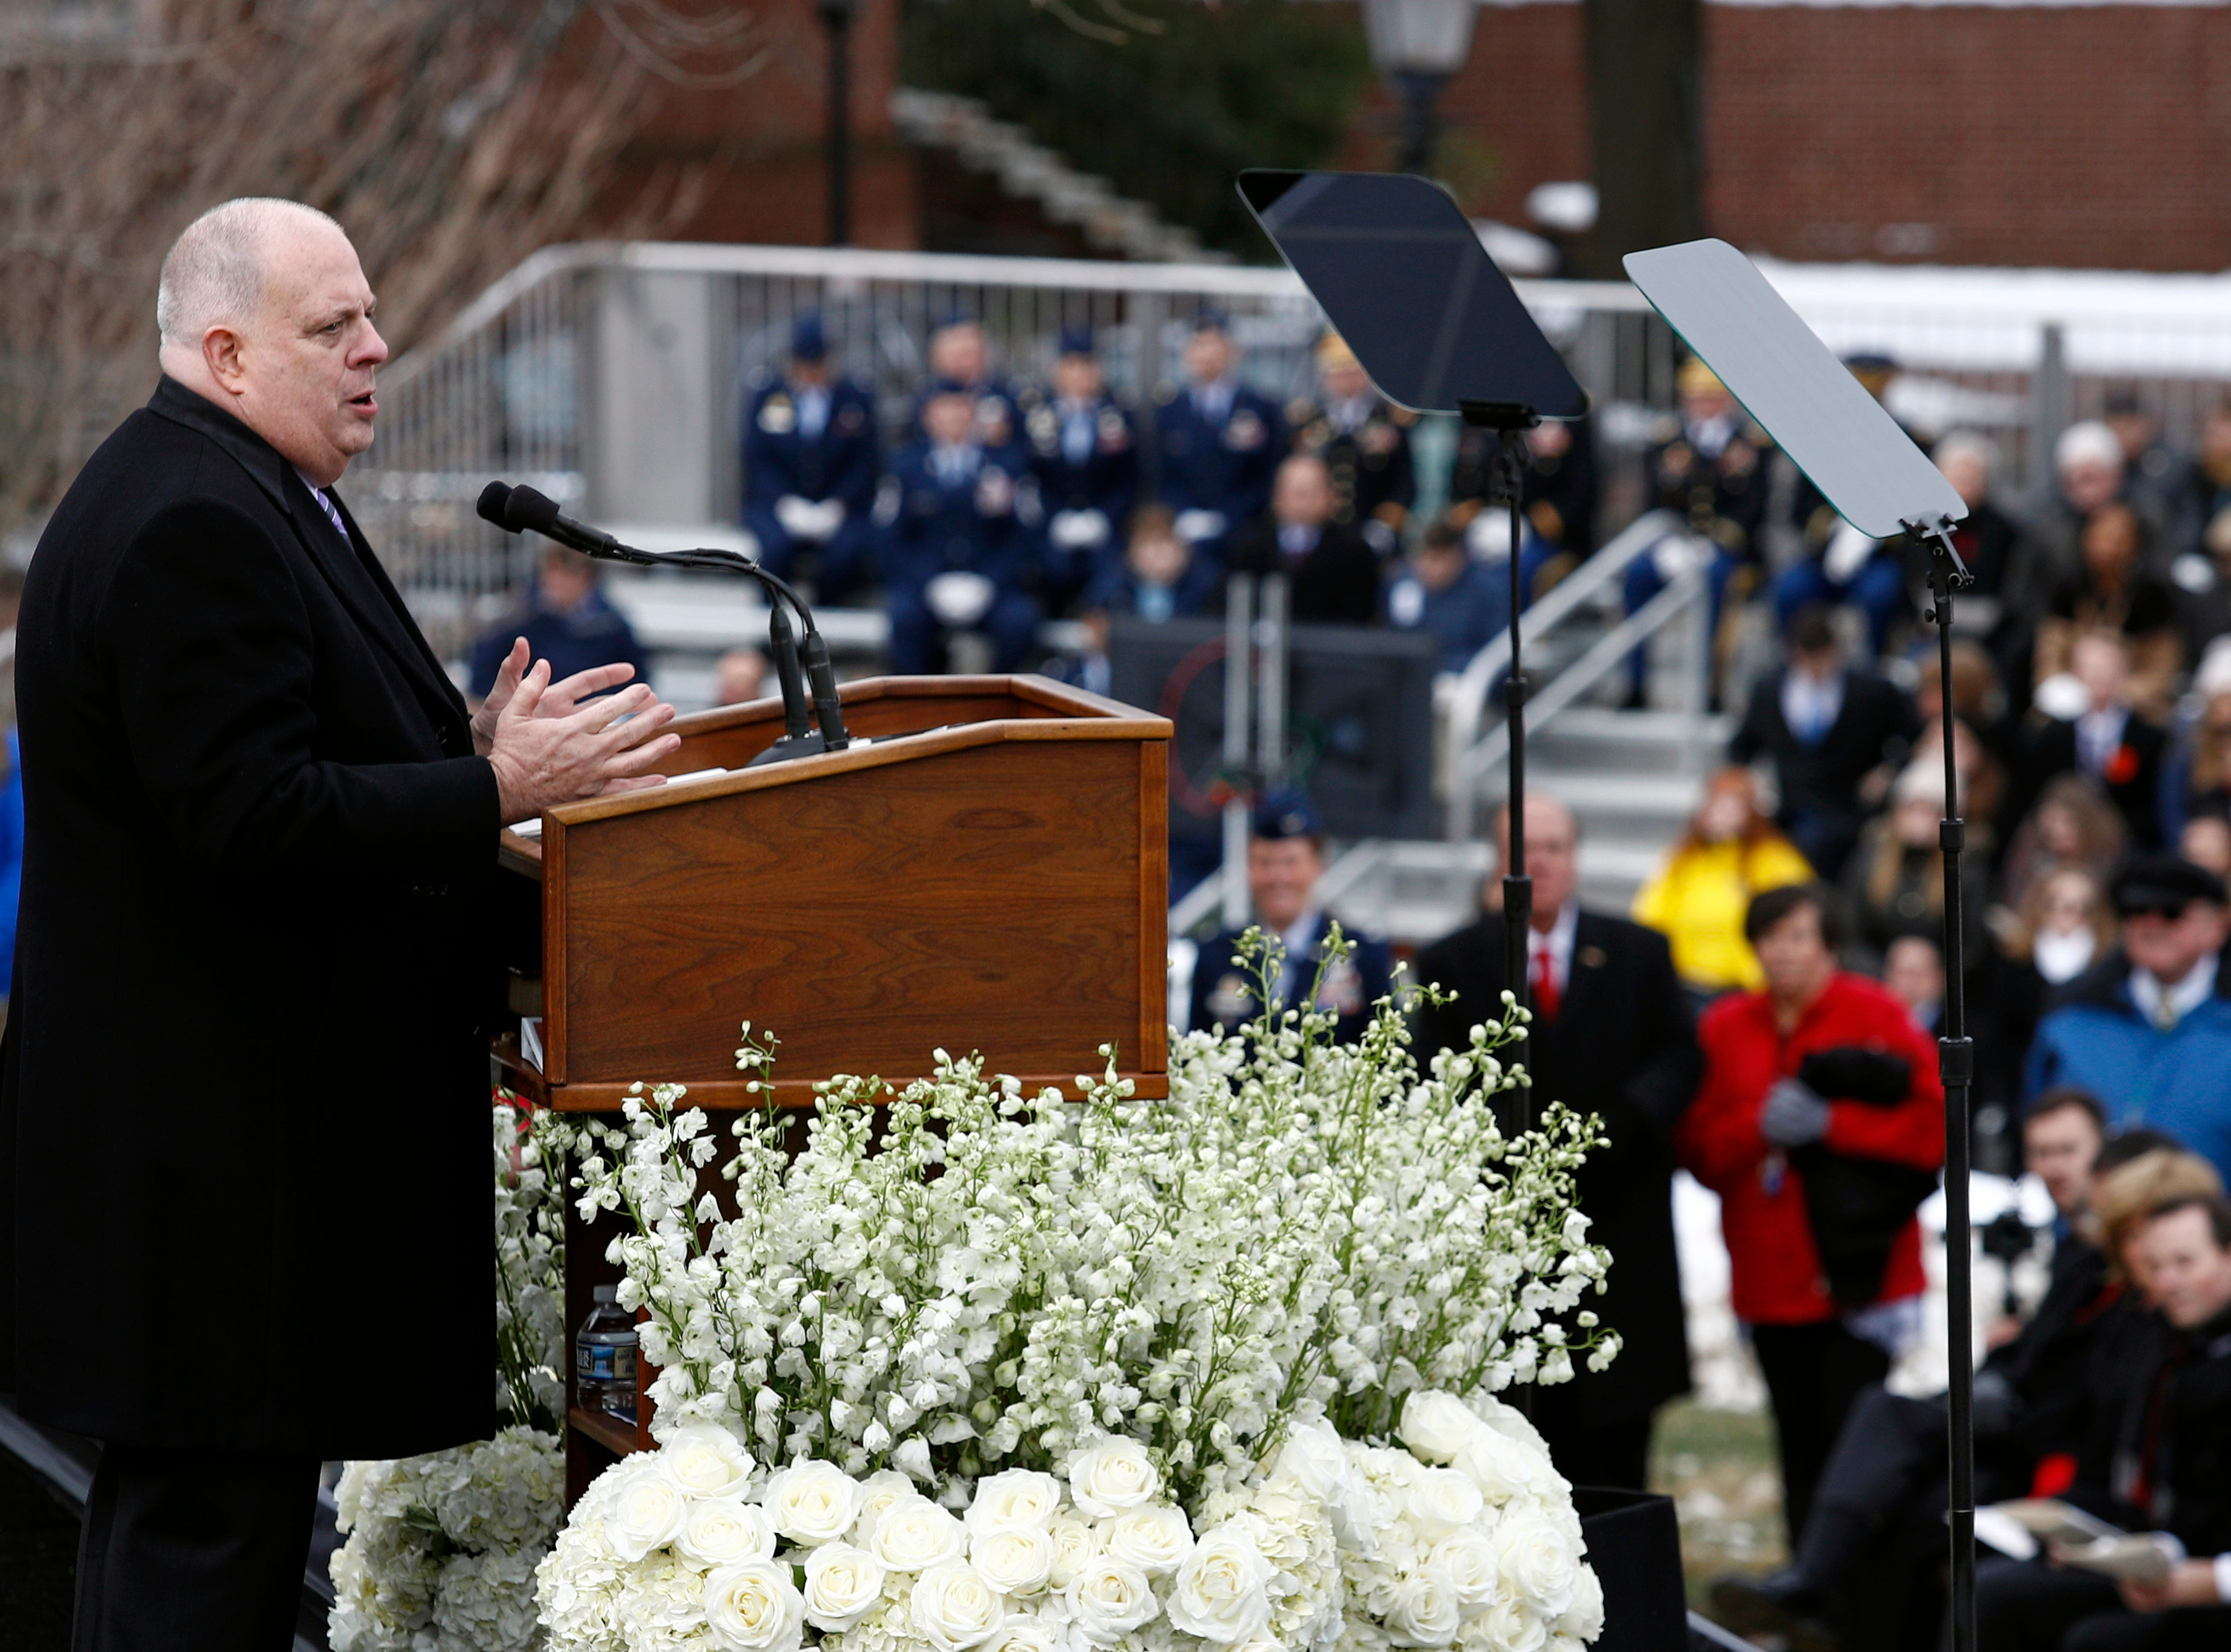 Maryland Gov. Larry Hogan delivers remarks at his inauguration ceremony Wednesday, Jan. 16, 2019, in Annapolis.